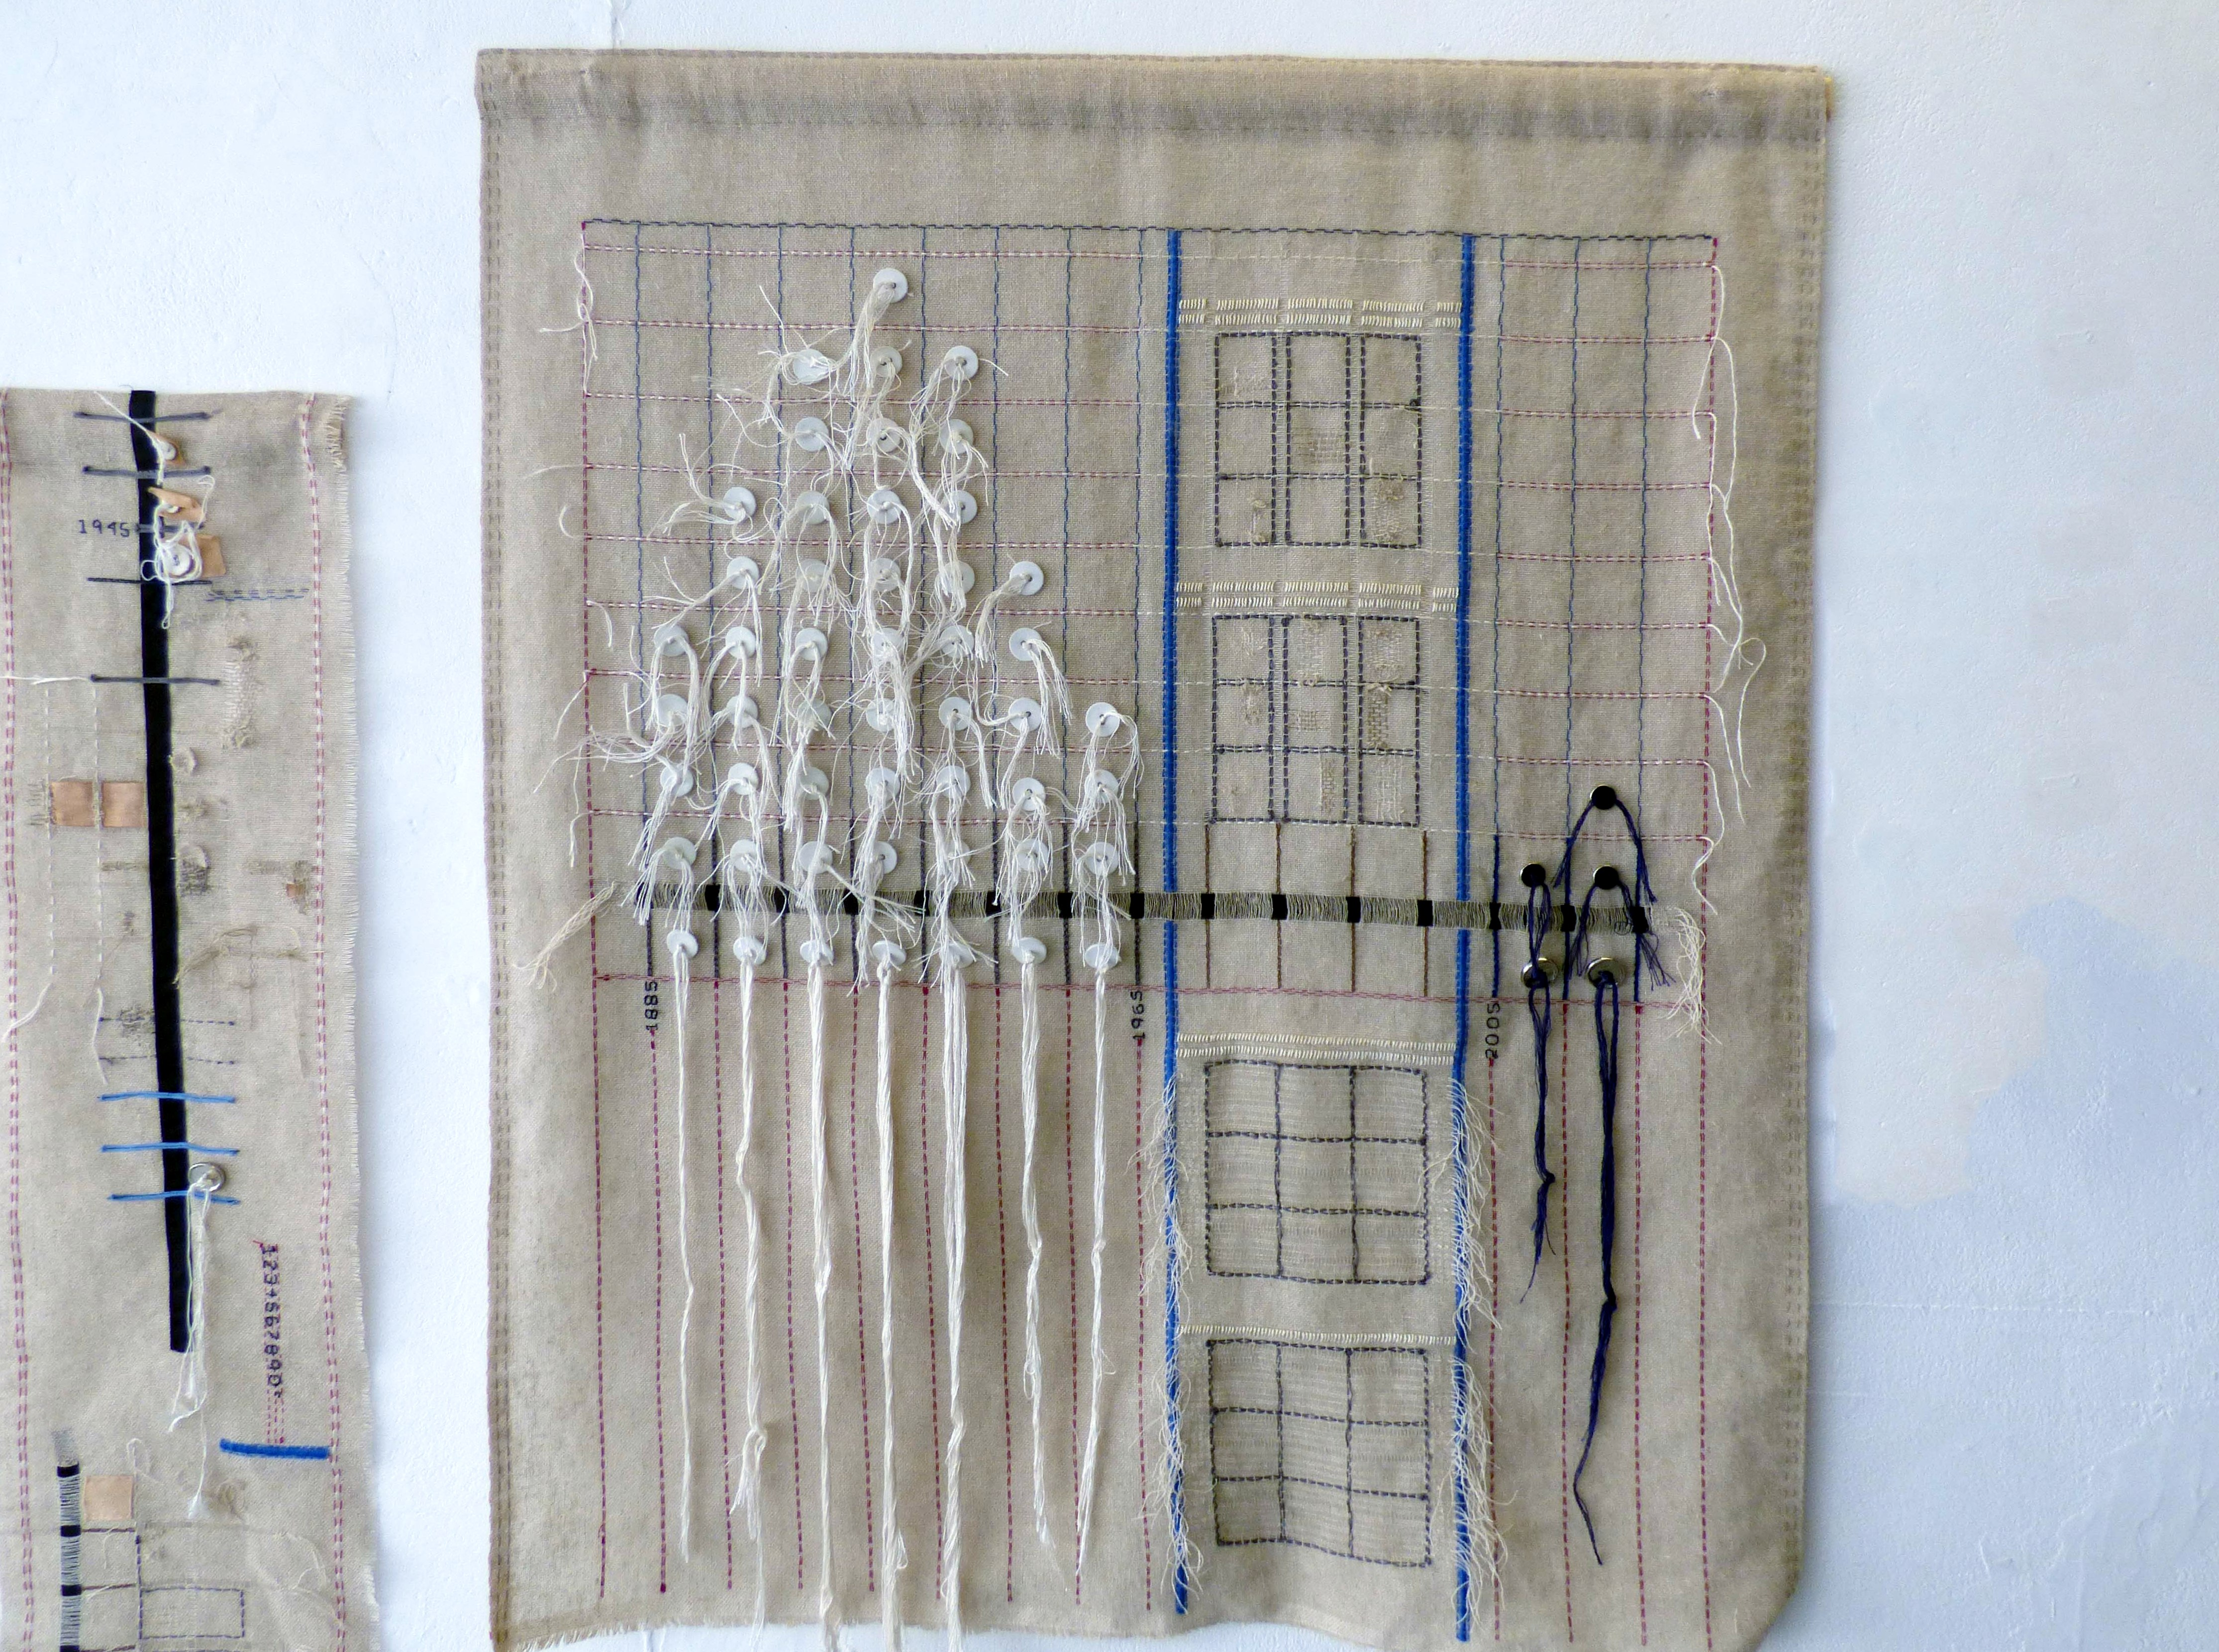 """PAST, PRESENT AND FUTURE, Tower Mill, Duckinfield by Chris Cannon, hand stitching & drawn thread techniques worked on a rough countable surface, """"Synergy"""" exhibition by Preston Threads, July 2021"""